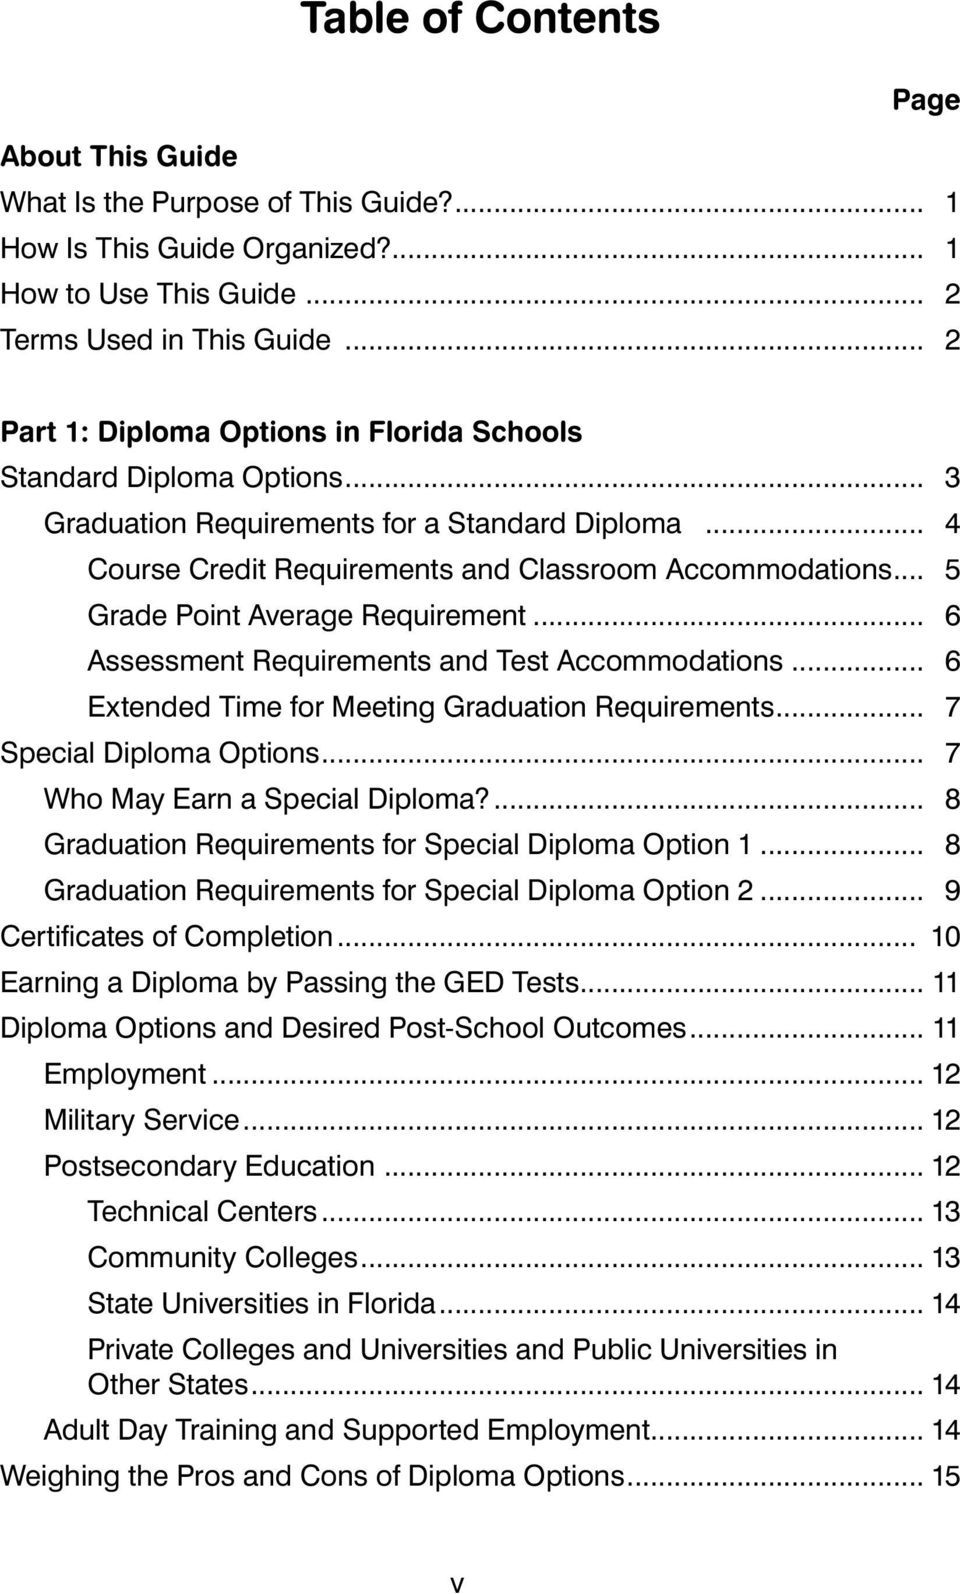 .. 5 Grade Point Average Requirement... 6 Assessment Requirements and Test Accommodations... 6 Extended Time for Meeting Graduation Requirements... 7 Specia Dipoma Options.